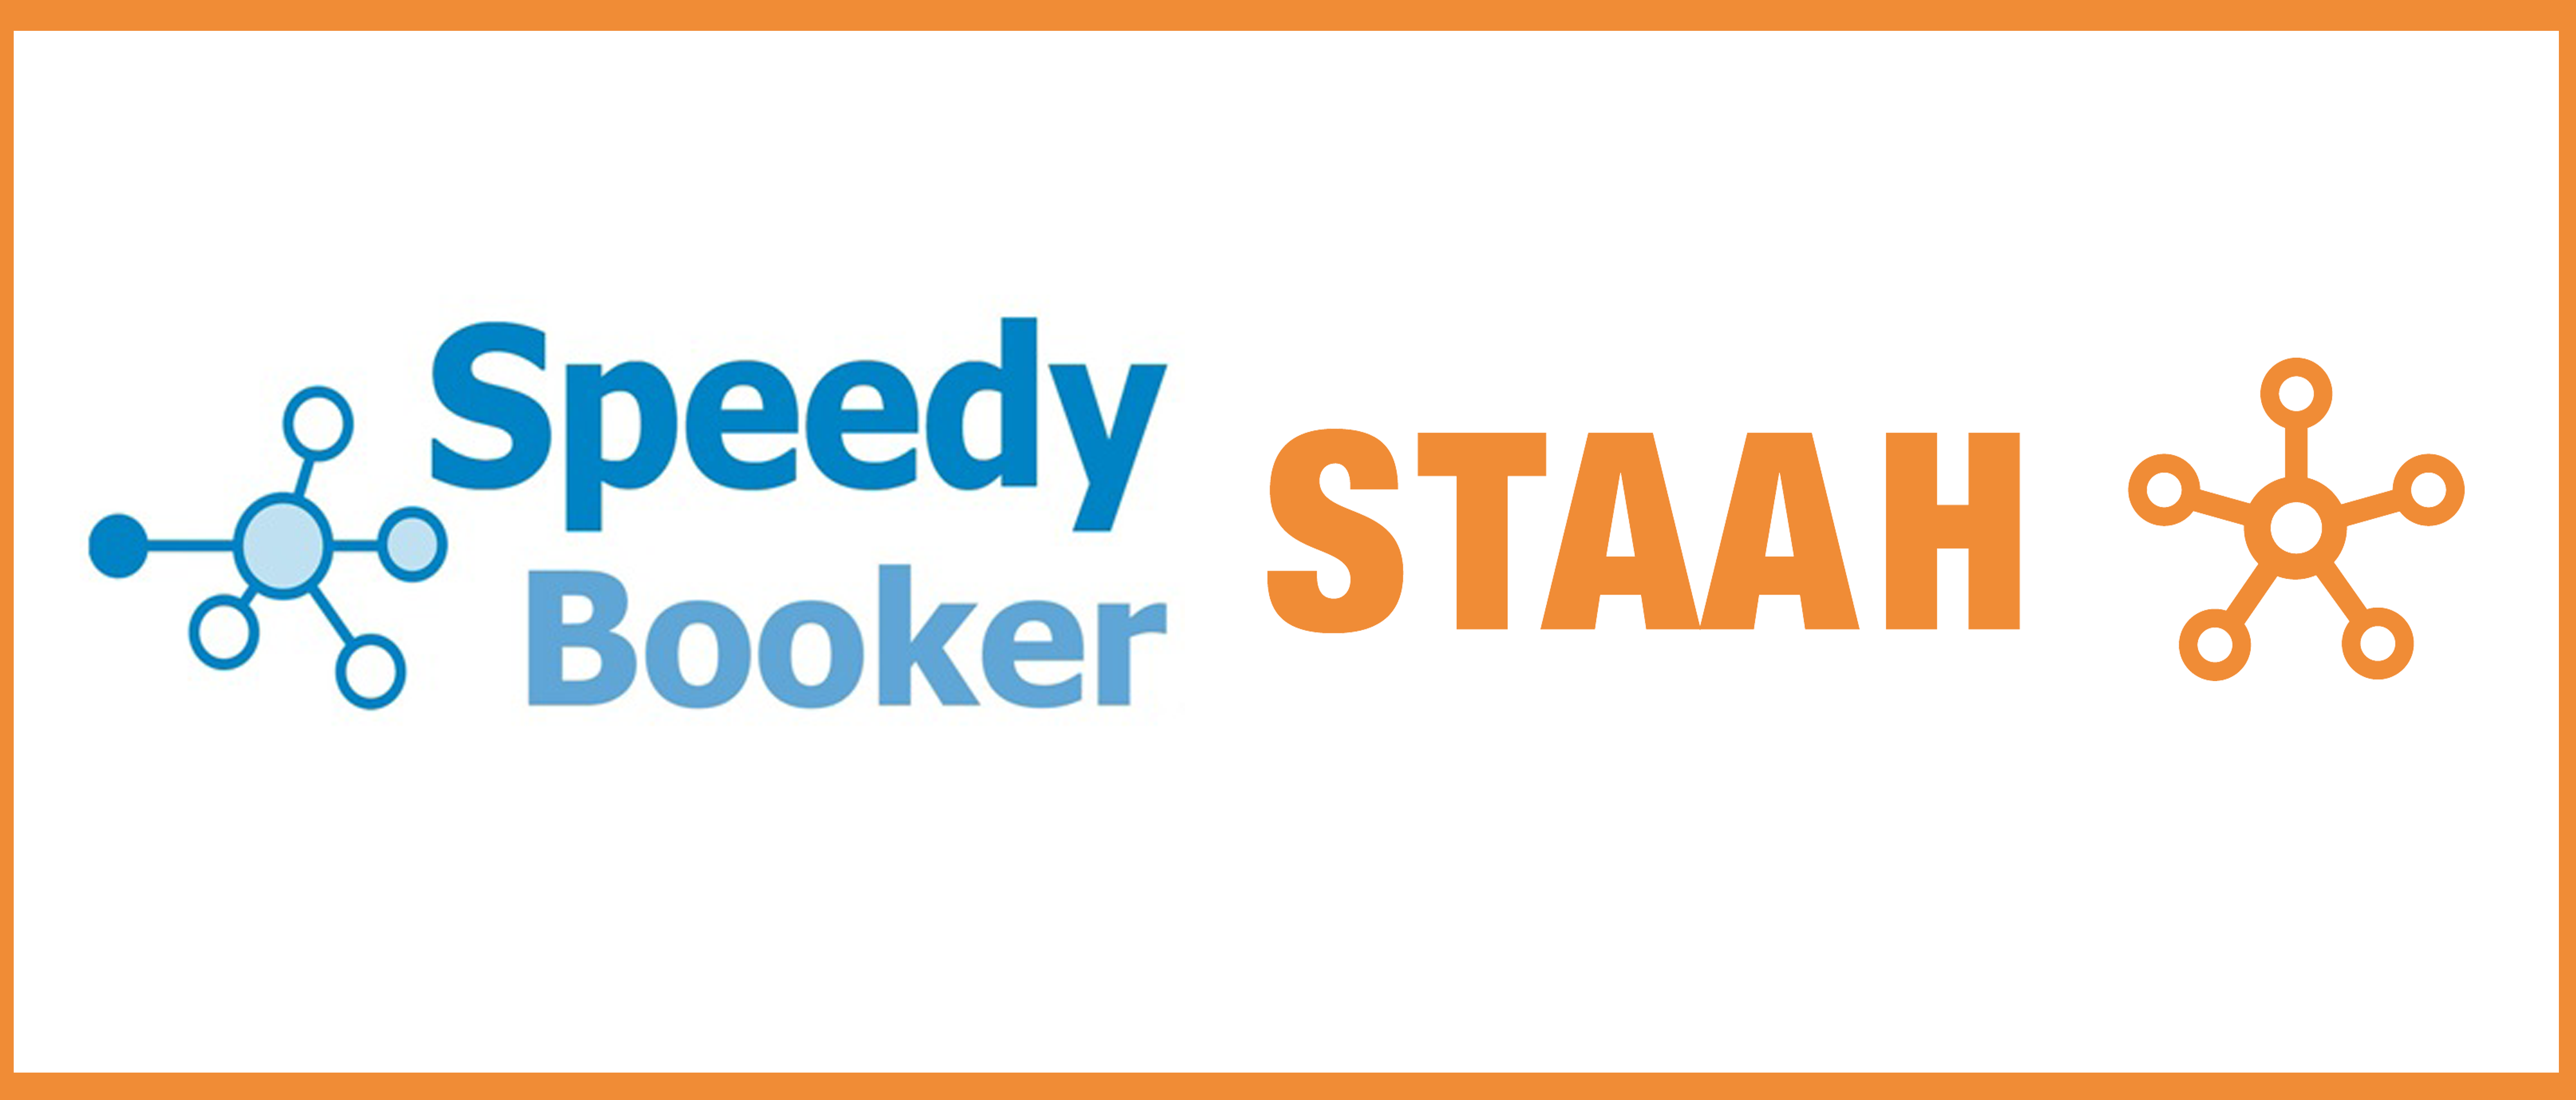 STAAH's integration with Speedybooker